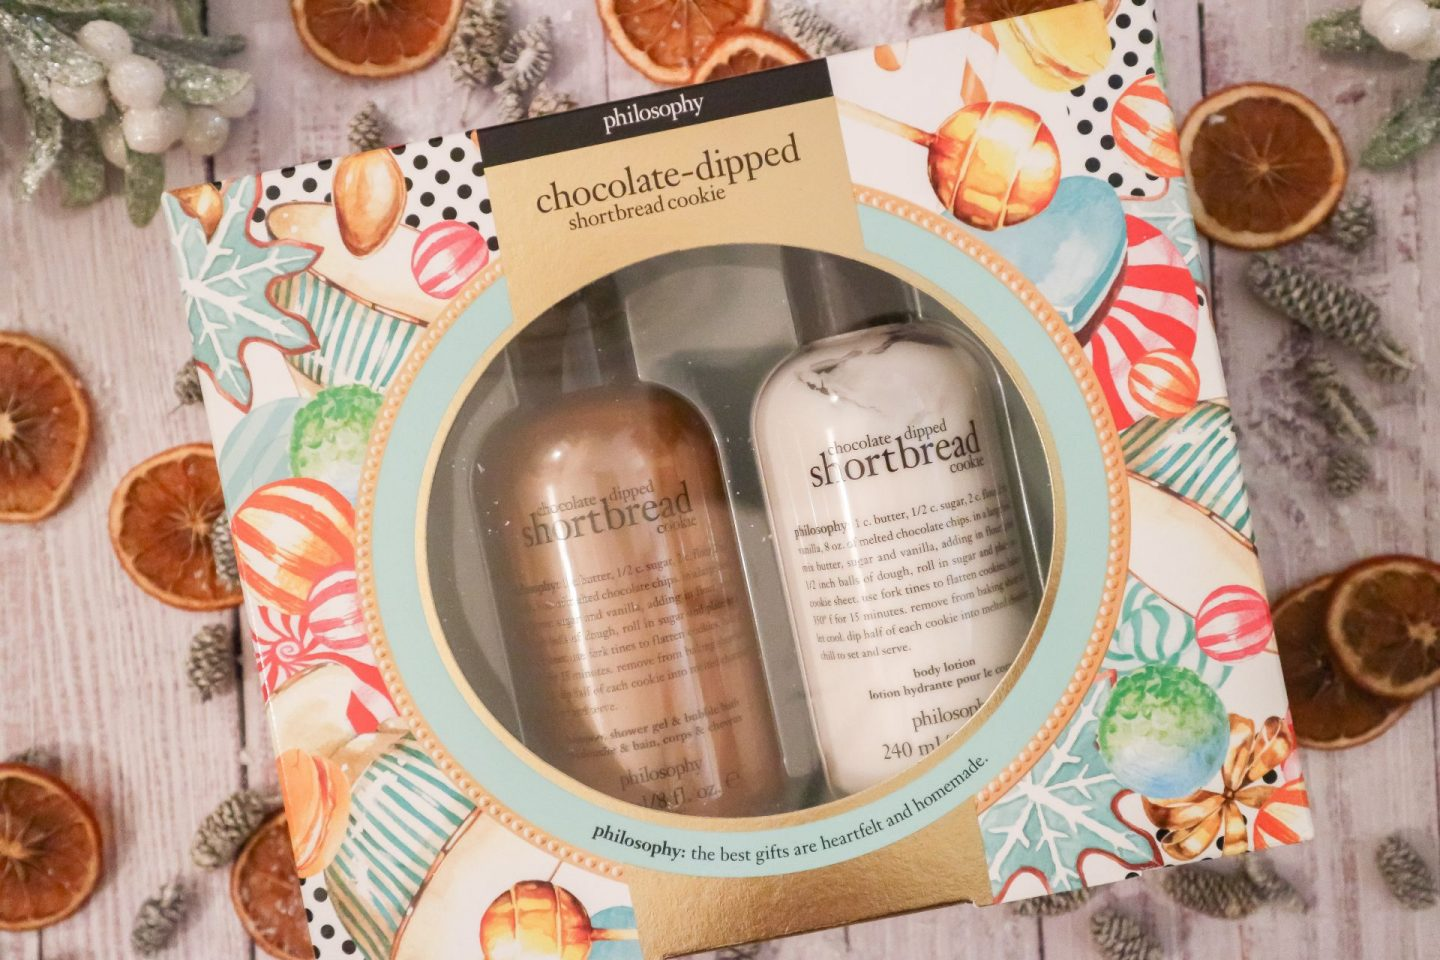 Philosophy Chocolate-Dipped Shortbread Duo